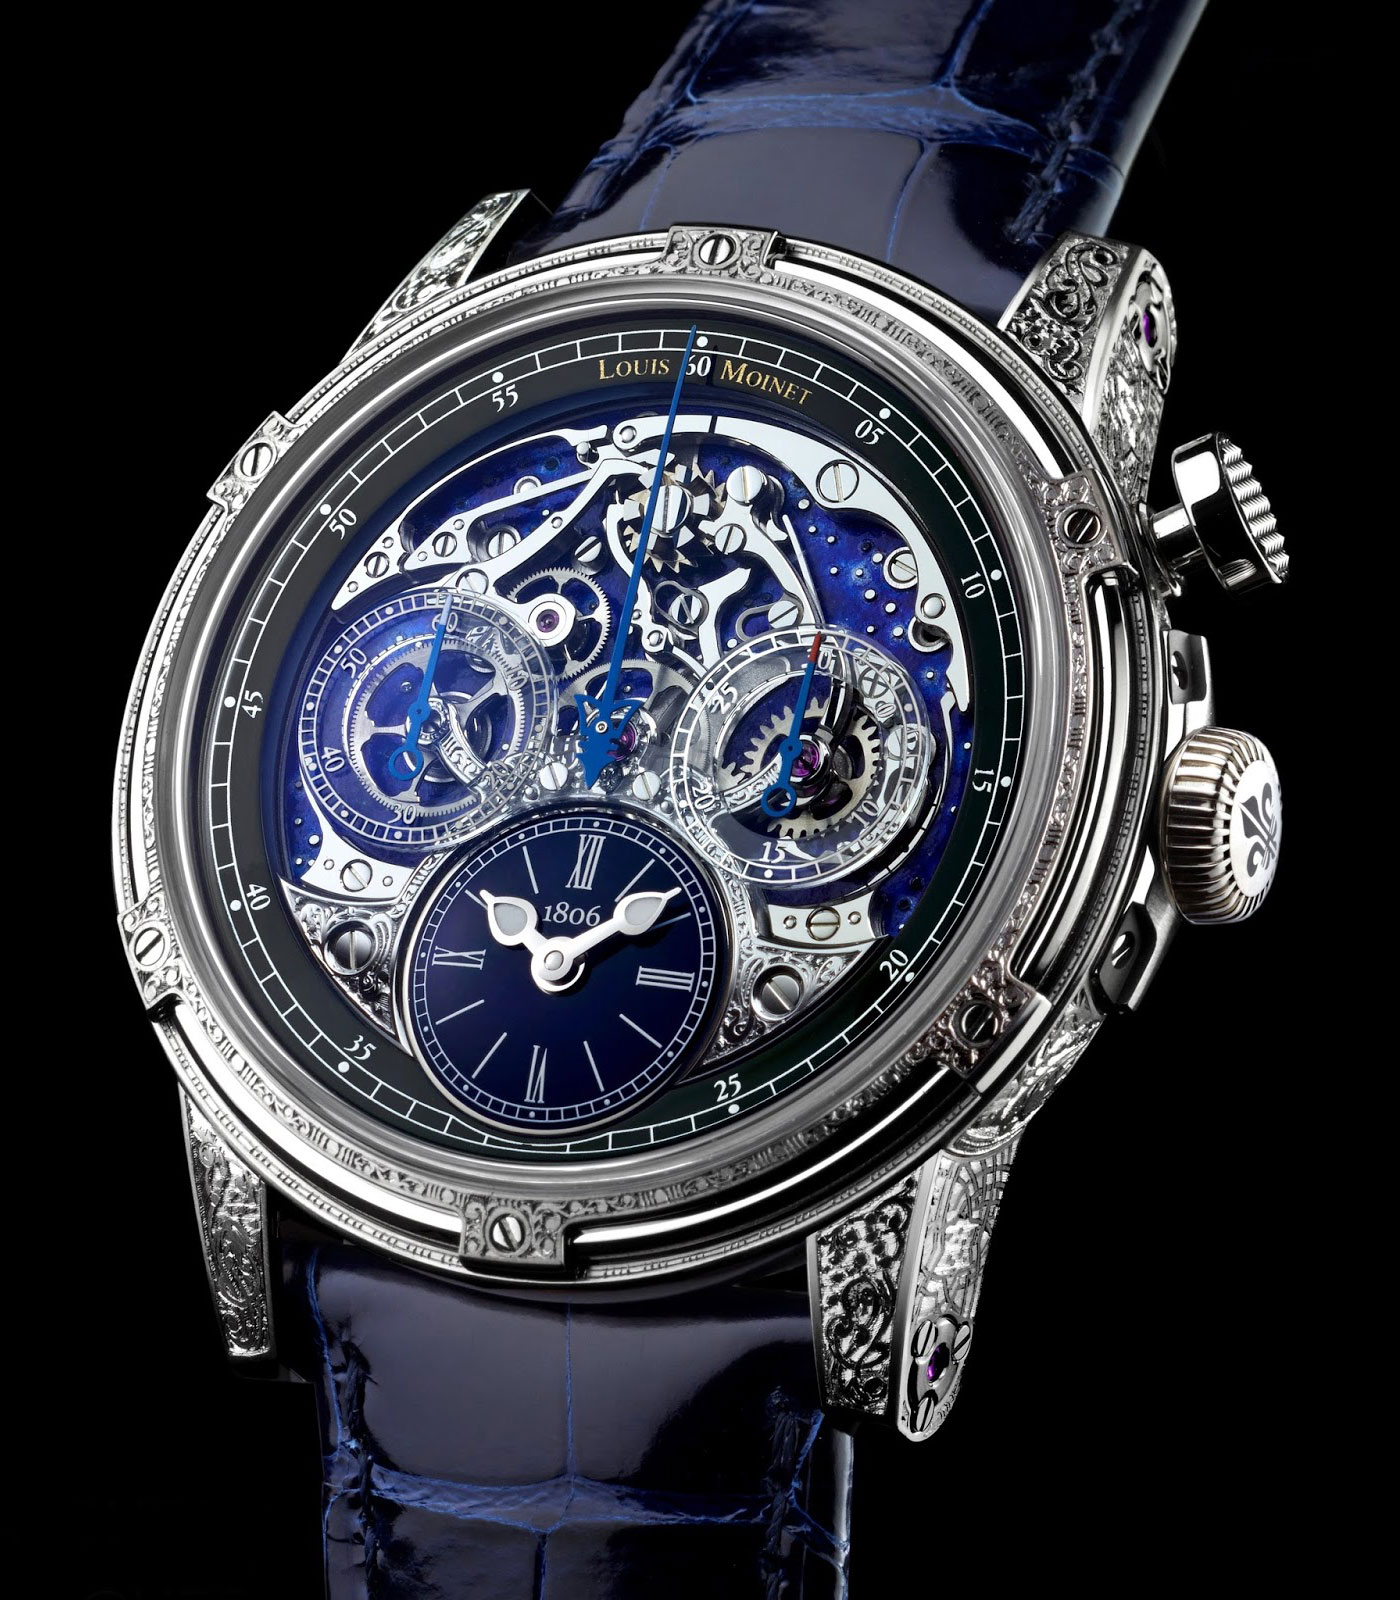 LOUIS MOINET MEMORIS RED ECLIPSE WITHE GOLD